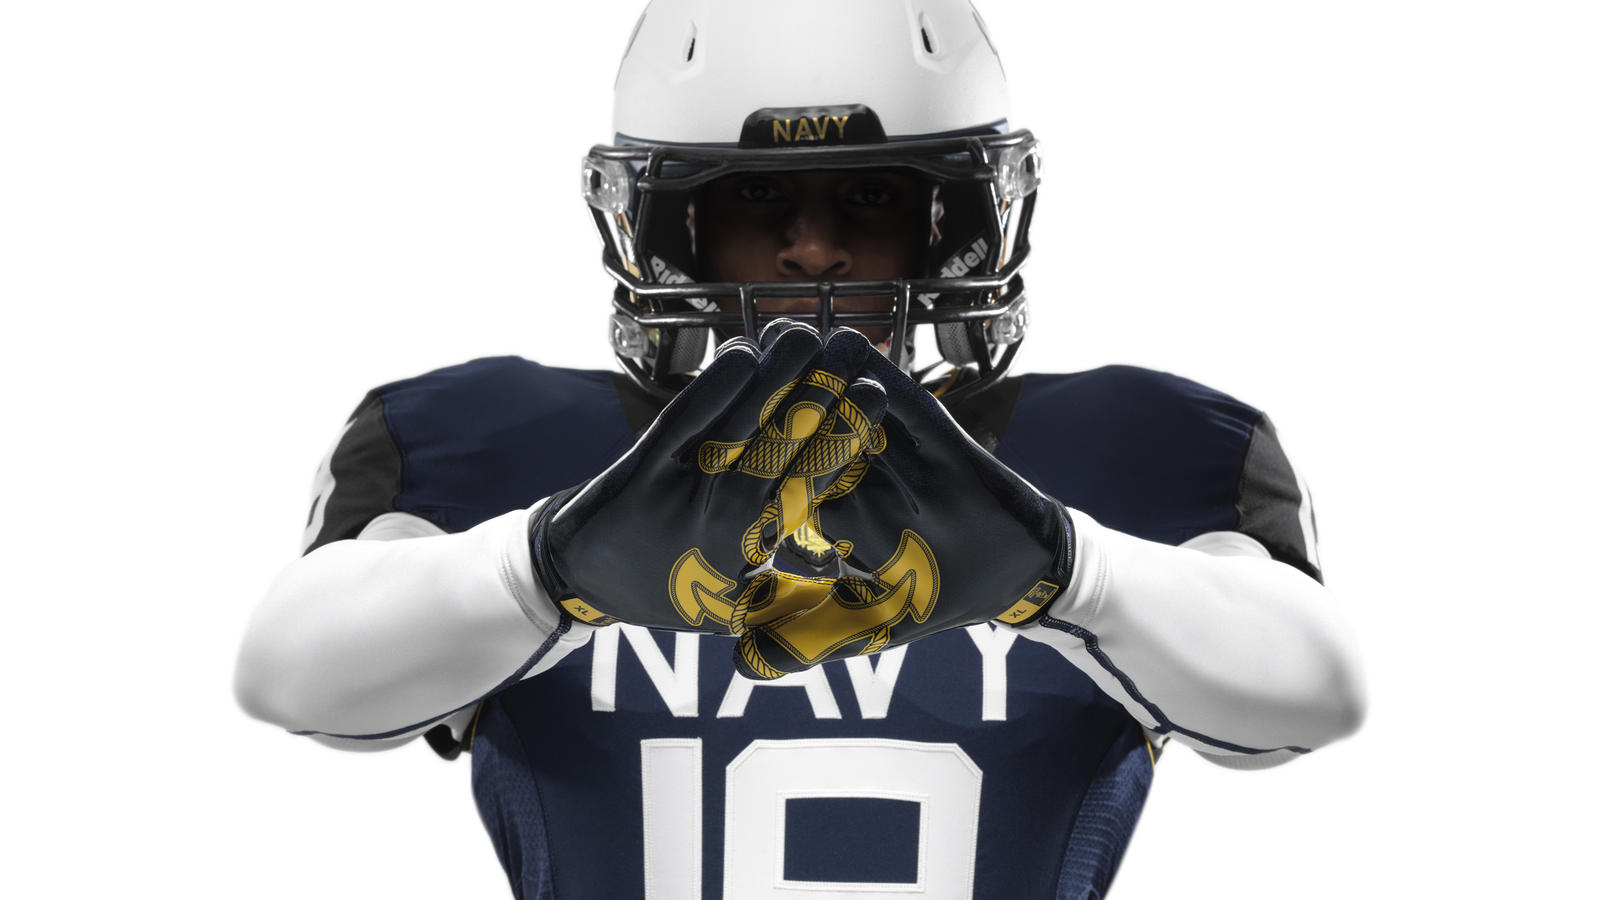 ncaa_fb13_uniforms_navy_gloves_0044